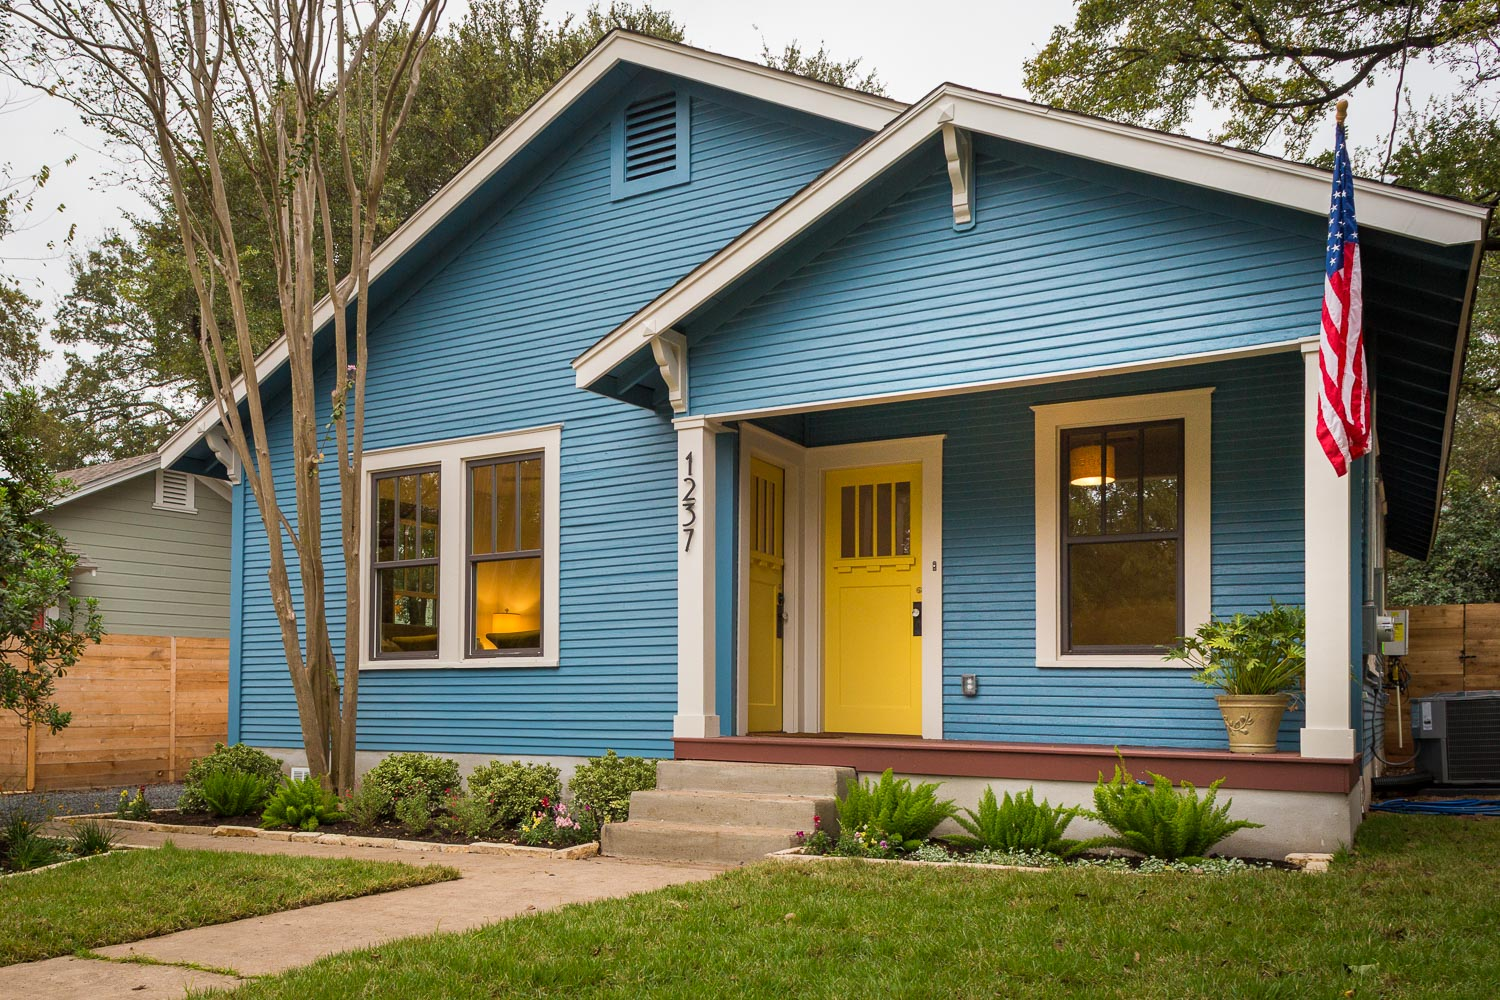 Fully Restored 1930 East Austin bungalow with painted front porch, added vintage corbles, blue siding with yellow front door.  New black windows from Plygem are 3 over 1 traditional style. The modern mission style house numbers are one of my favorite features and came from a local hardware store (Breed and Co)